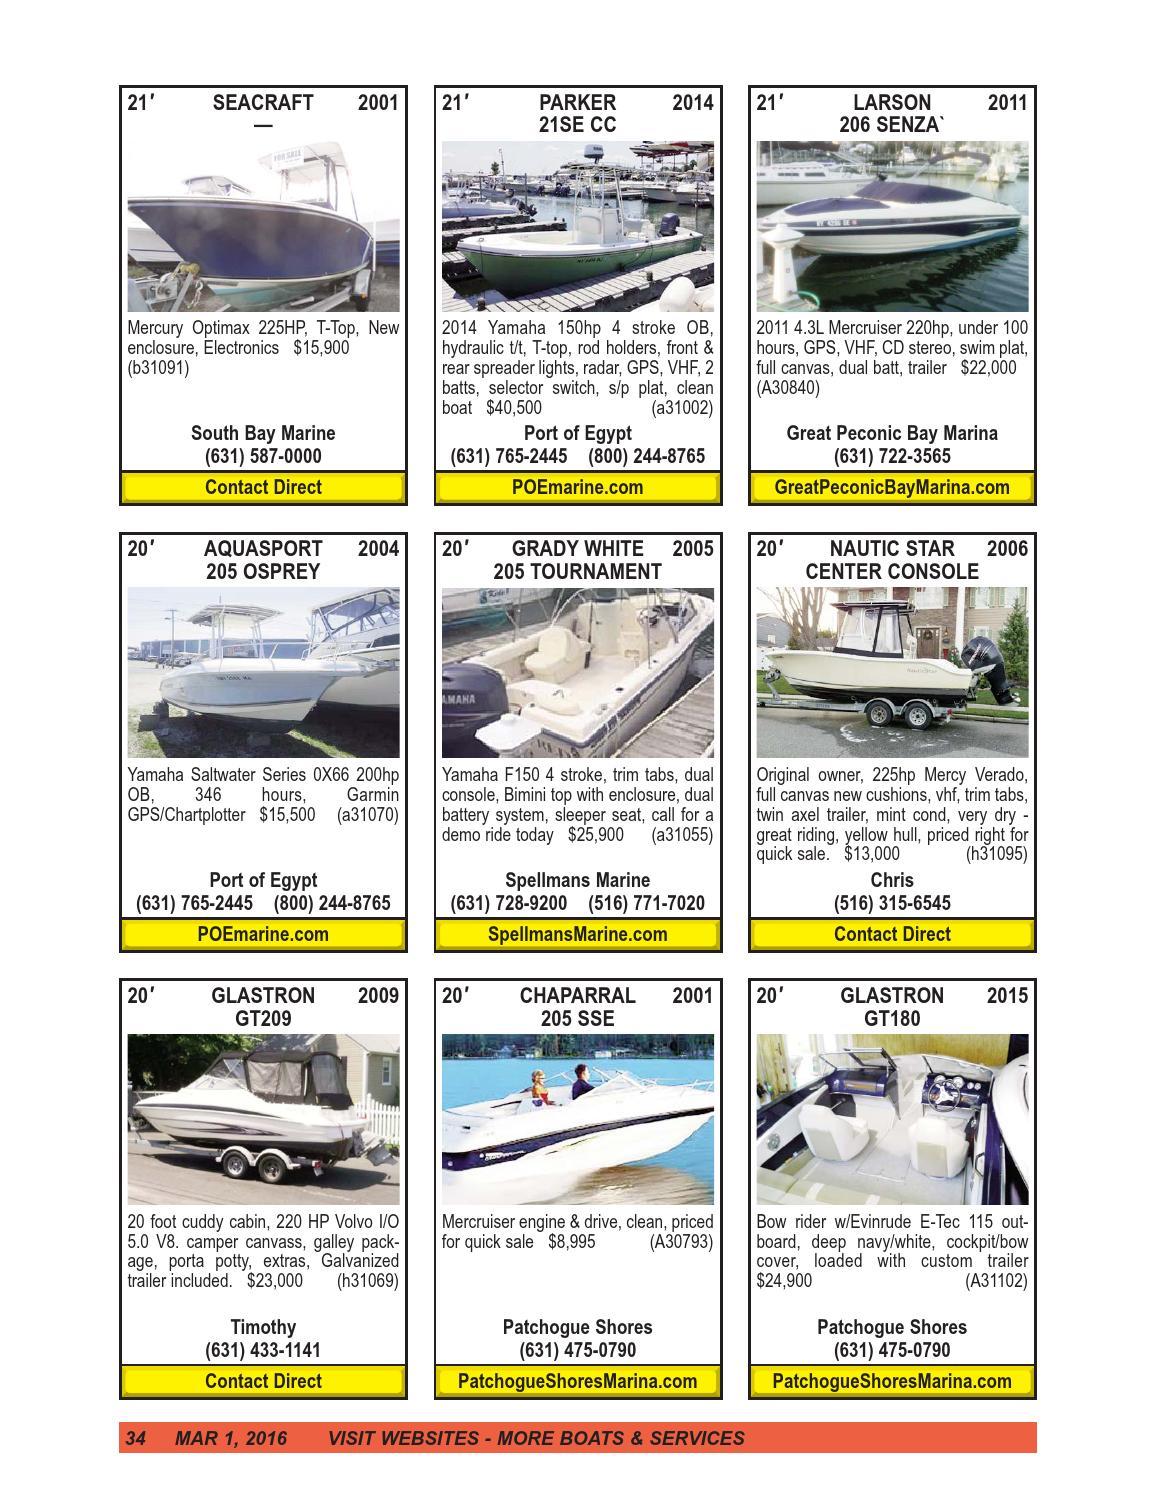 Boats4sale march 1, 2016 by Boats4Sale com Media - issuu